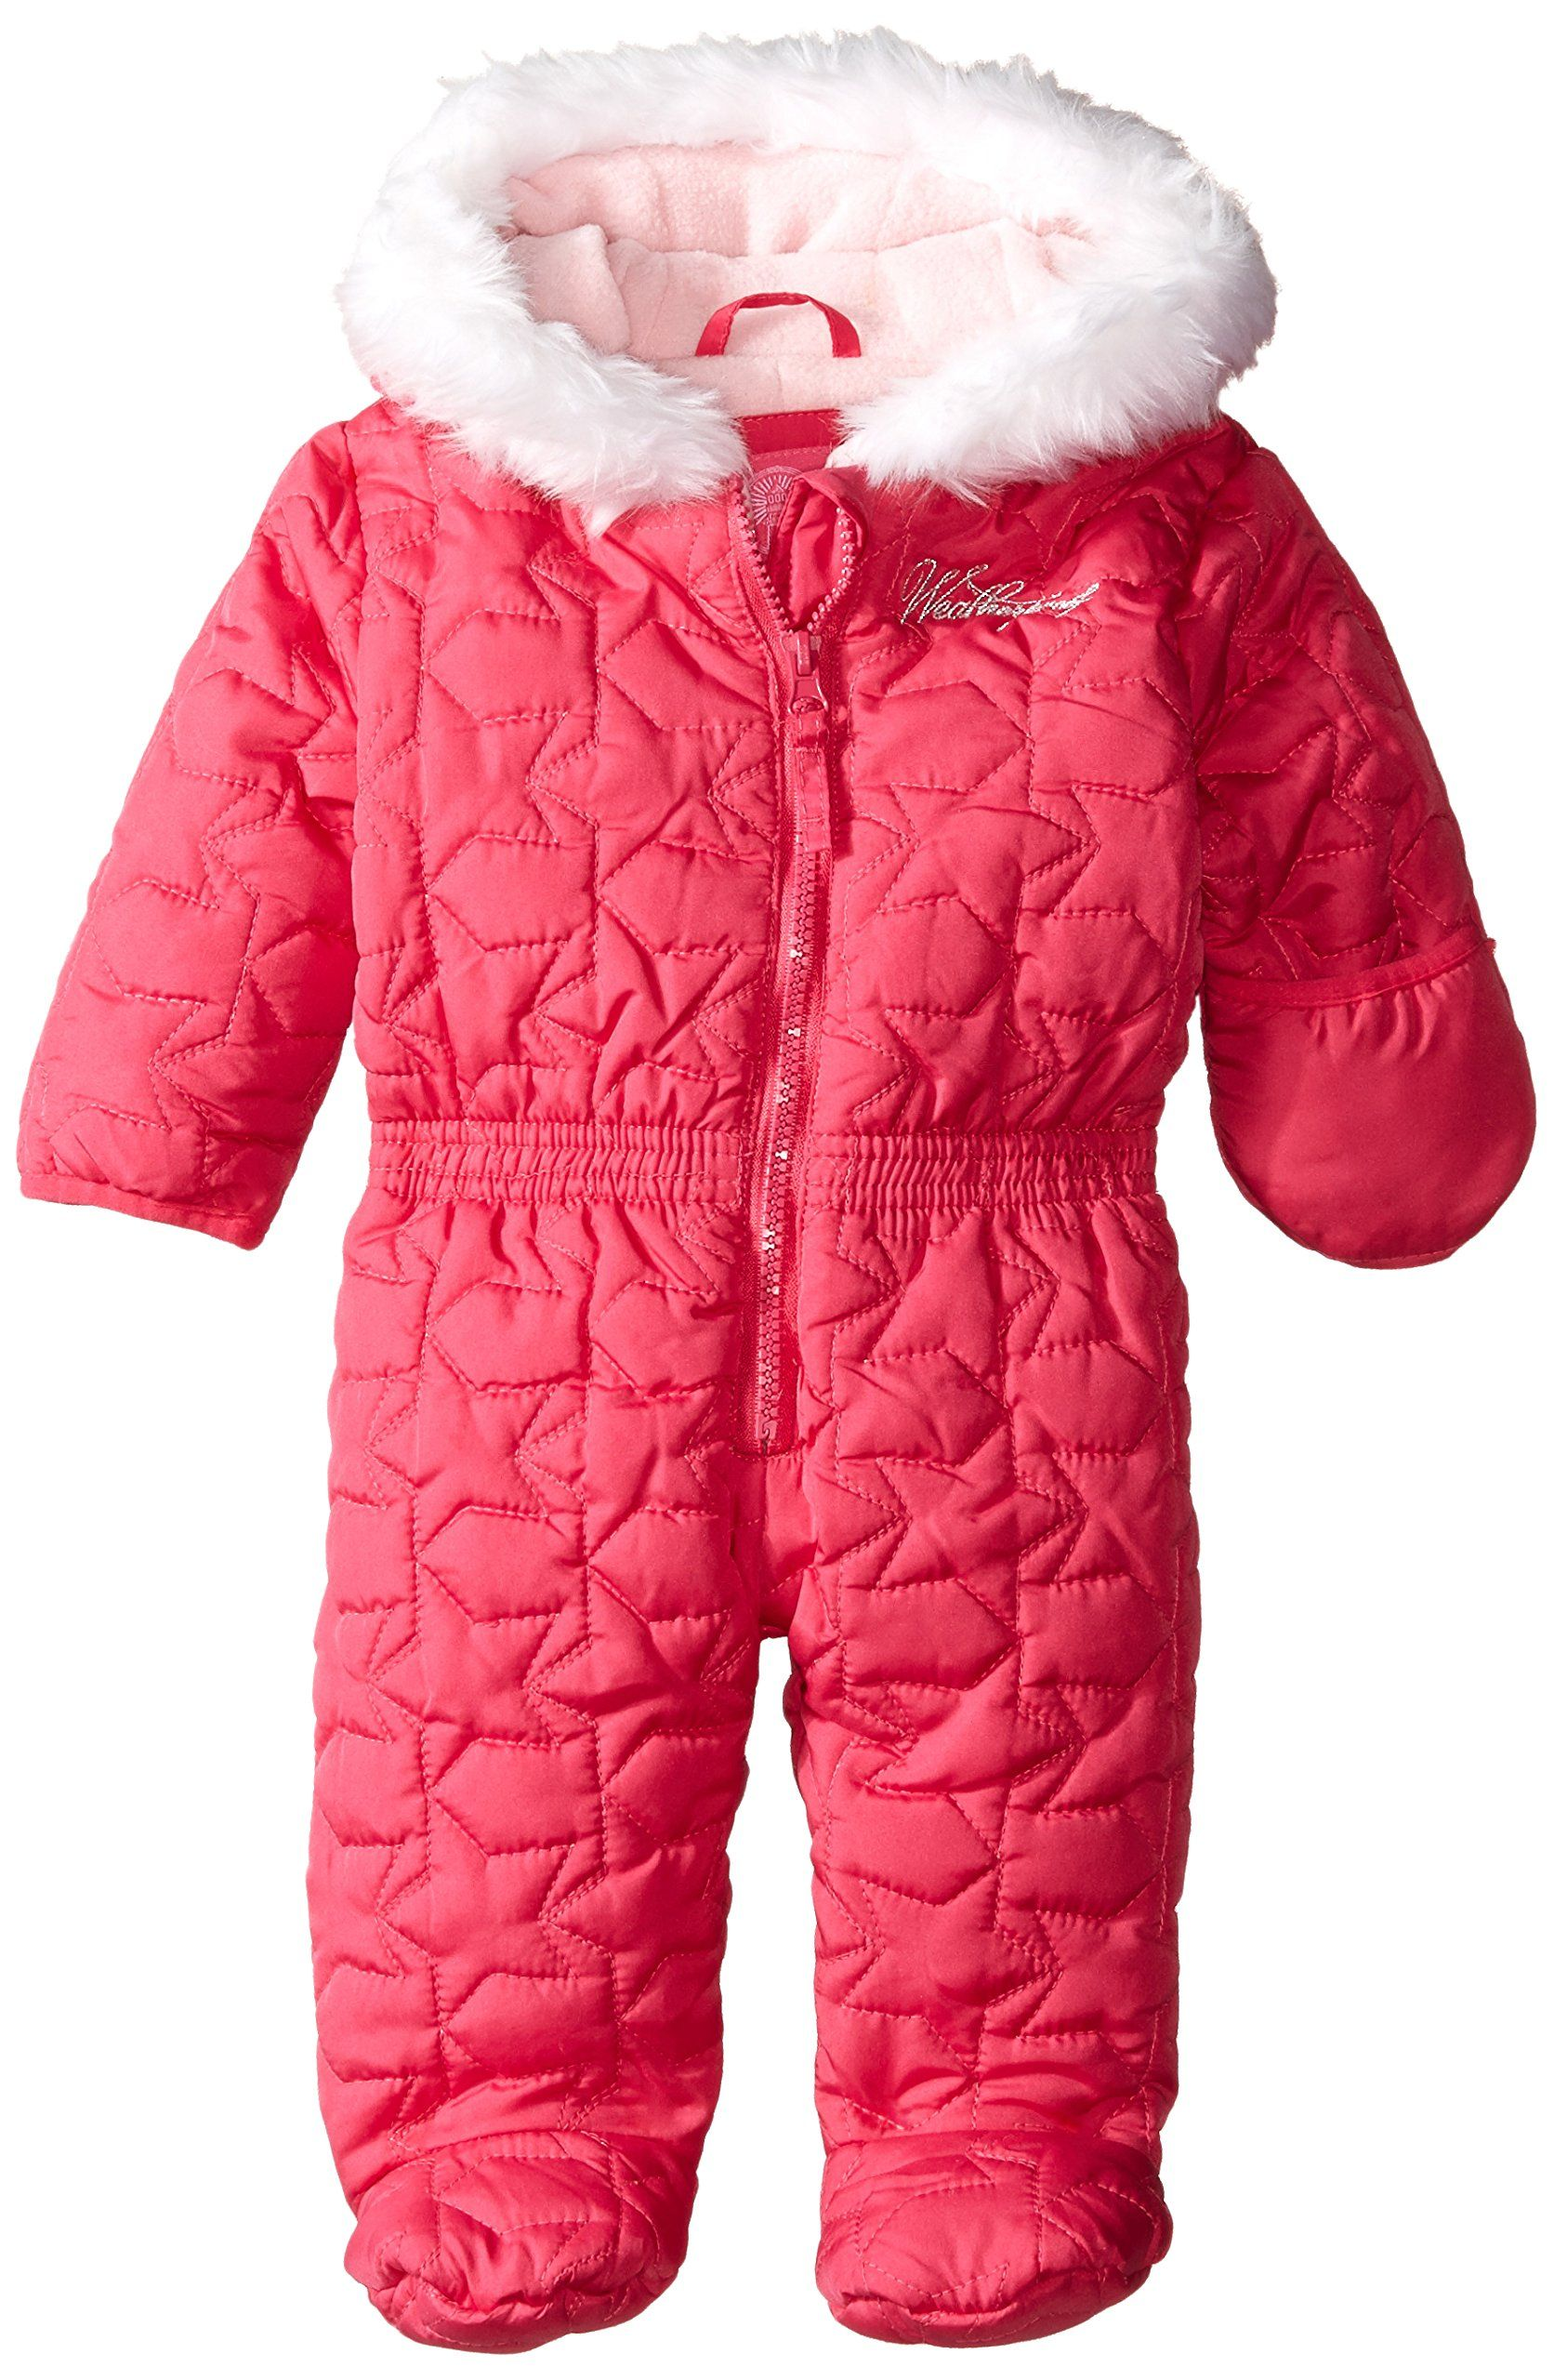 Baby Boys Dinosaur Volcano All in One Hooded Winter Snowsuit White 3-6 Months